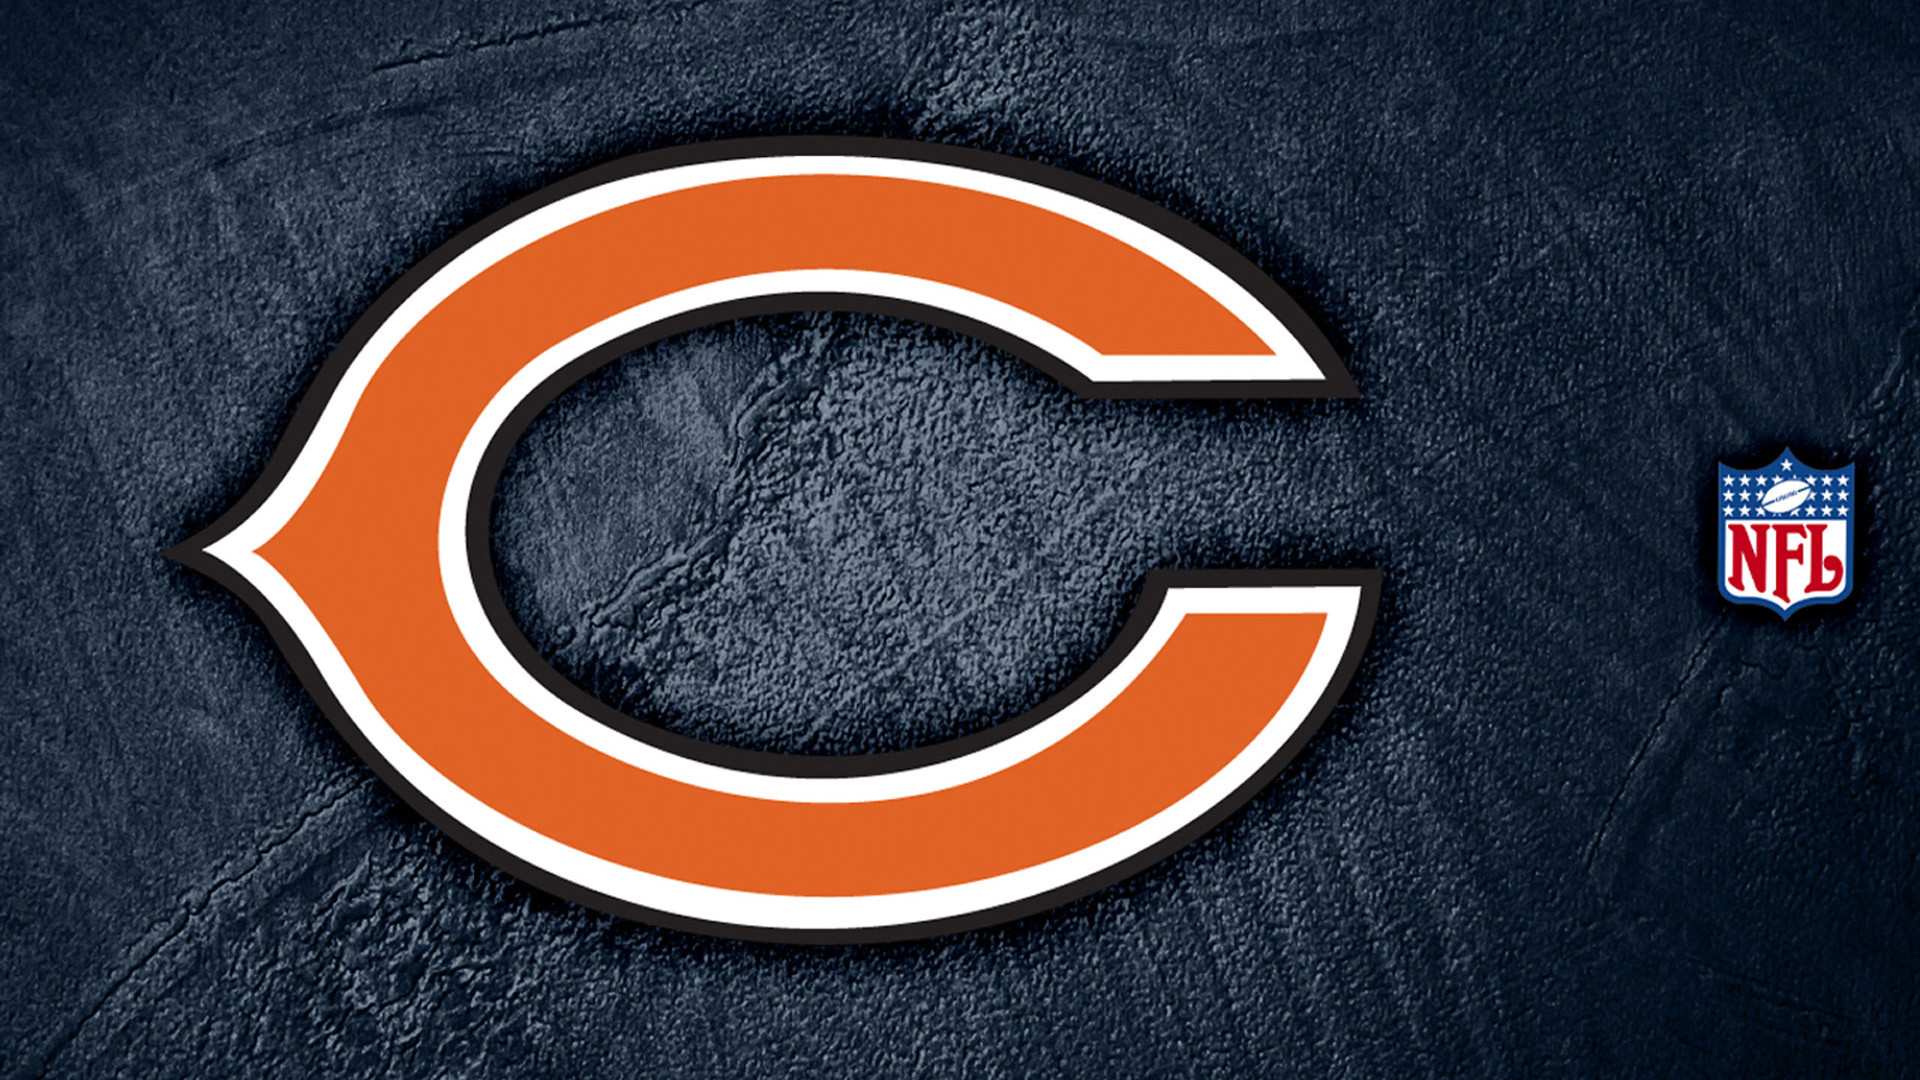 More Chicago Bears wallpaper wallpapers | Chicago Bears wallpapers